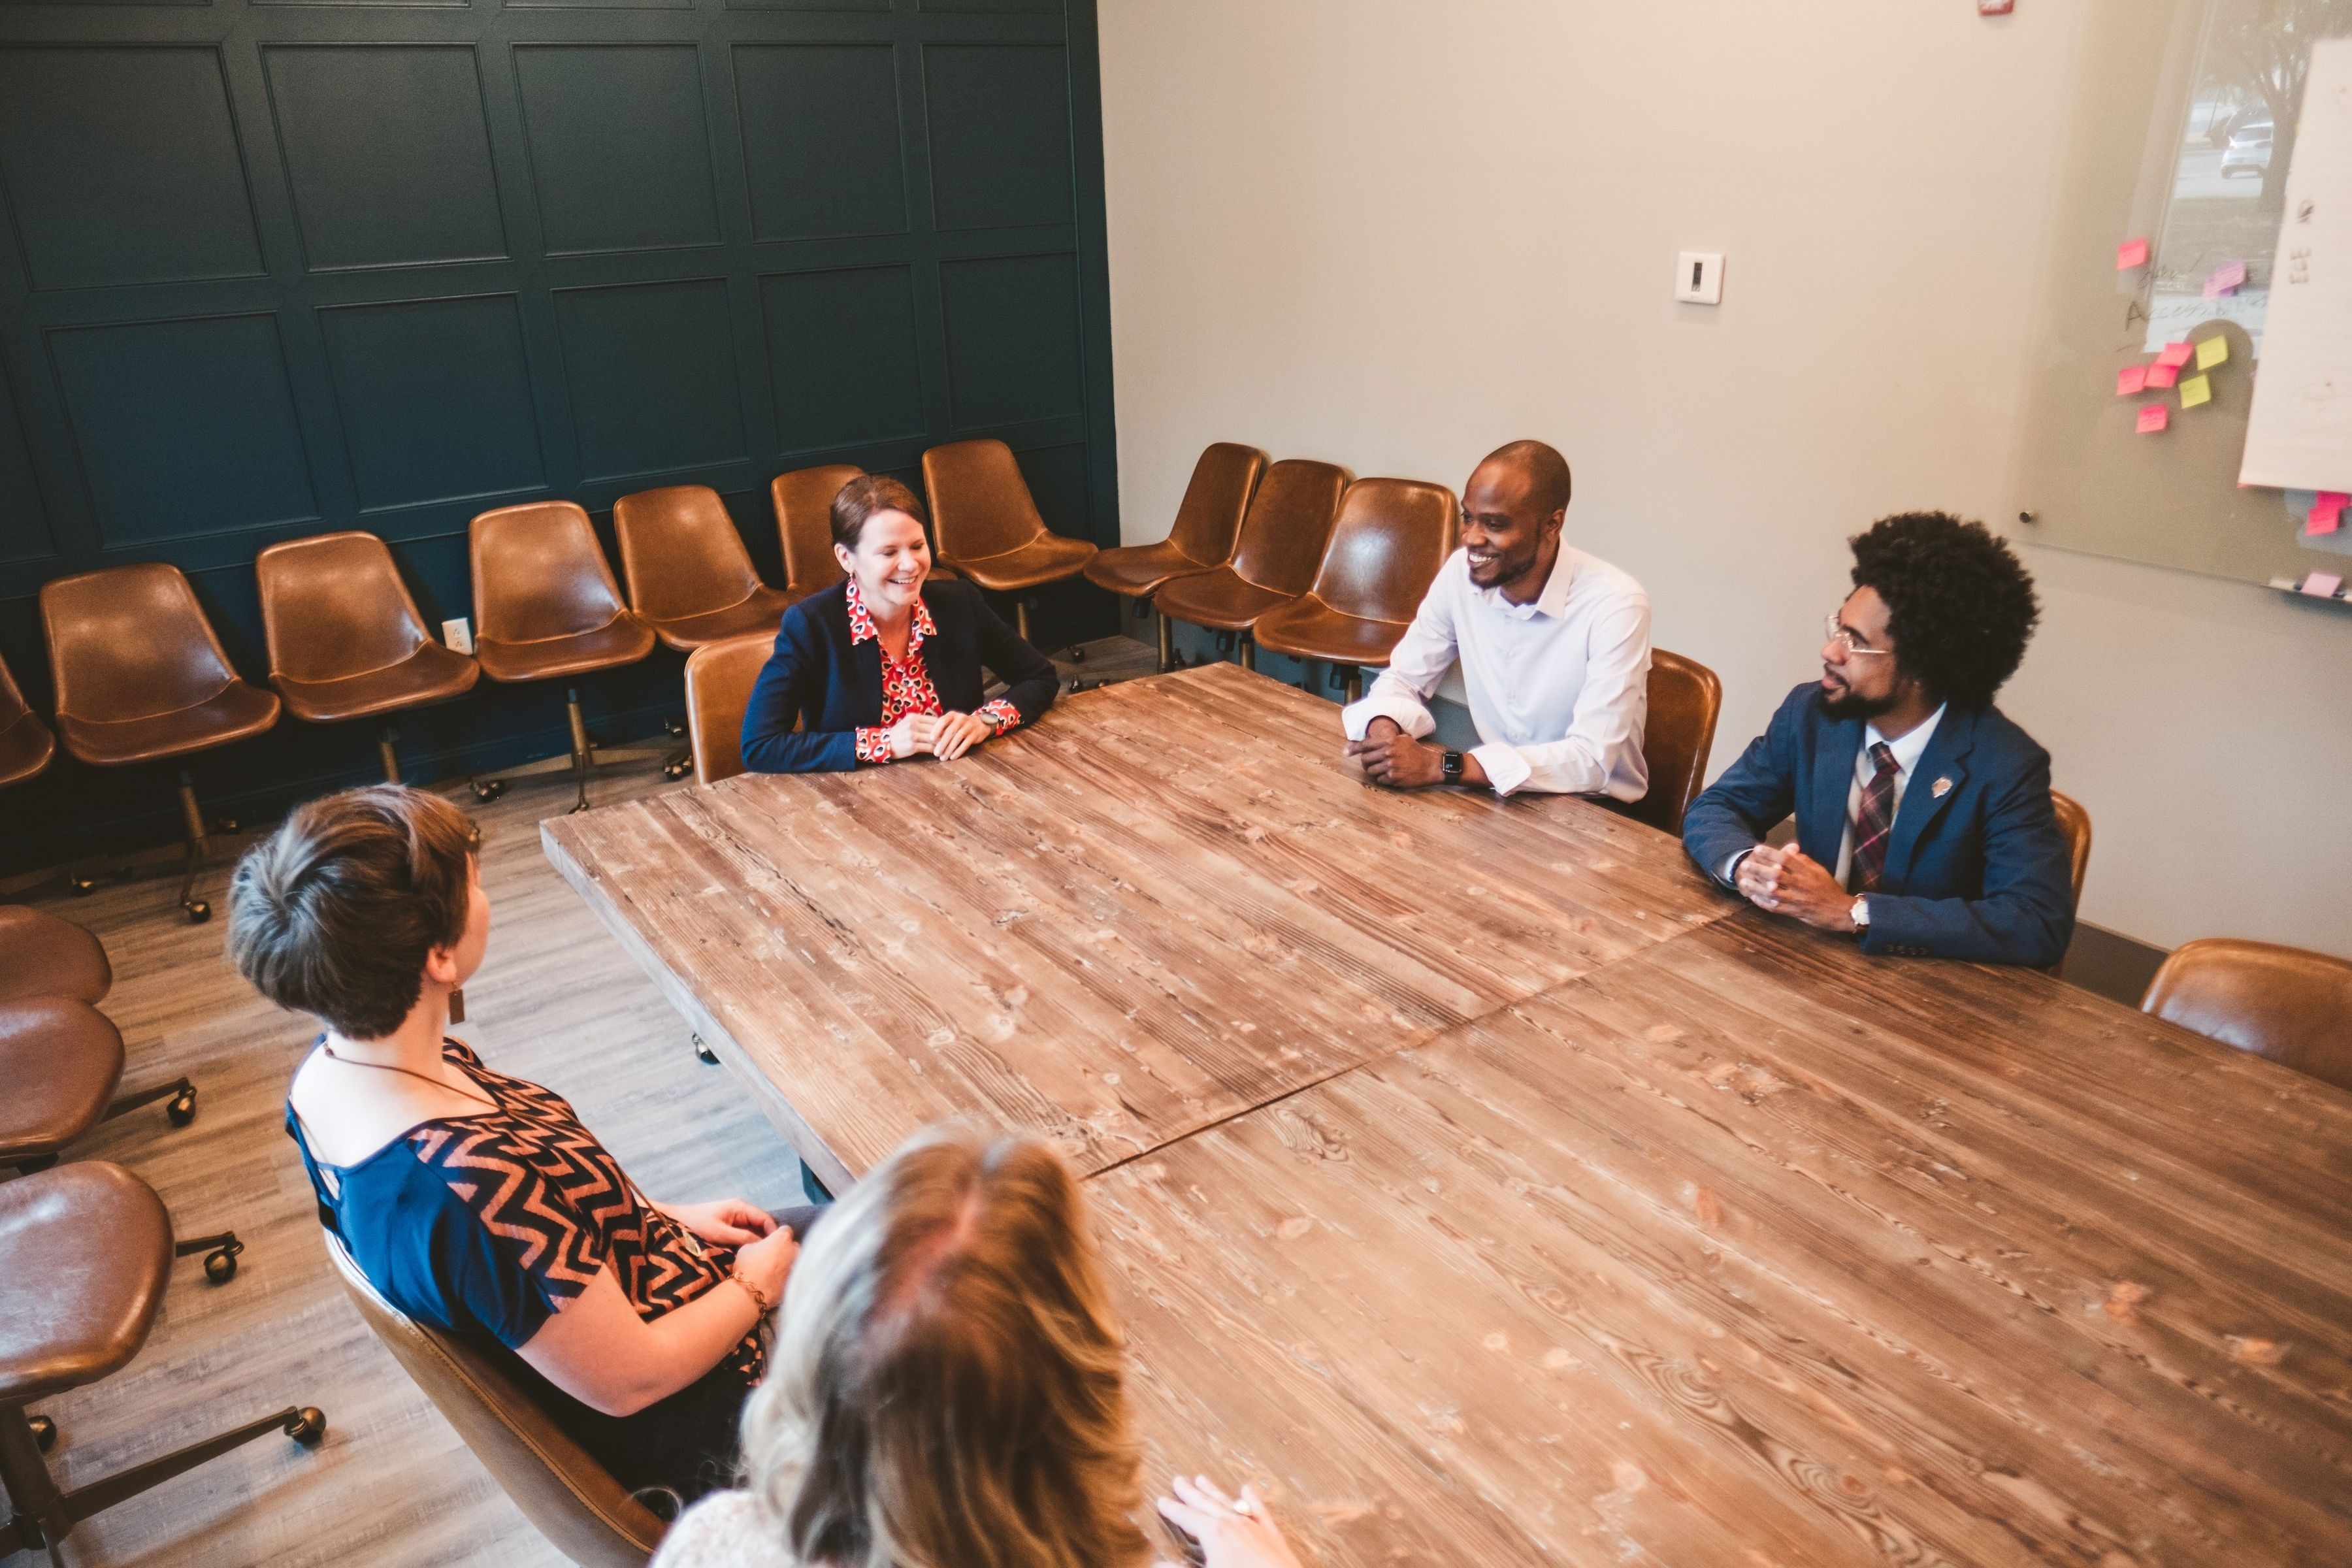 Group image of several CFGC staff in the boardroom.